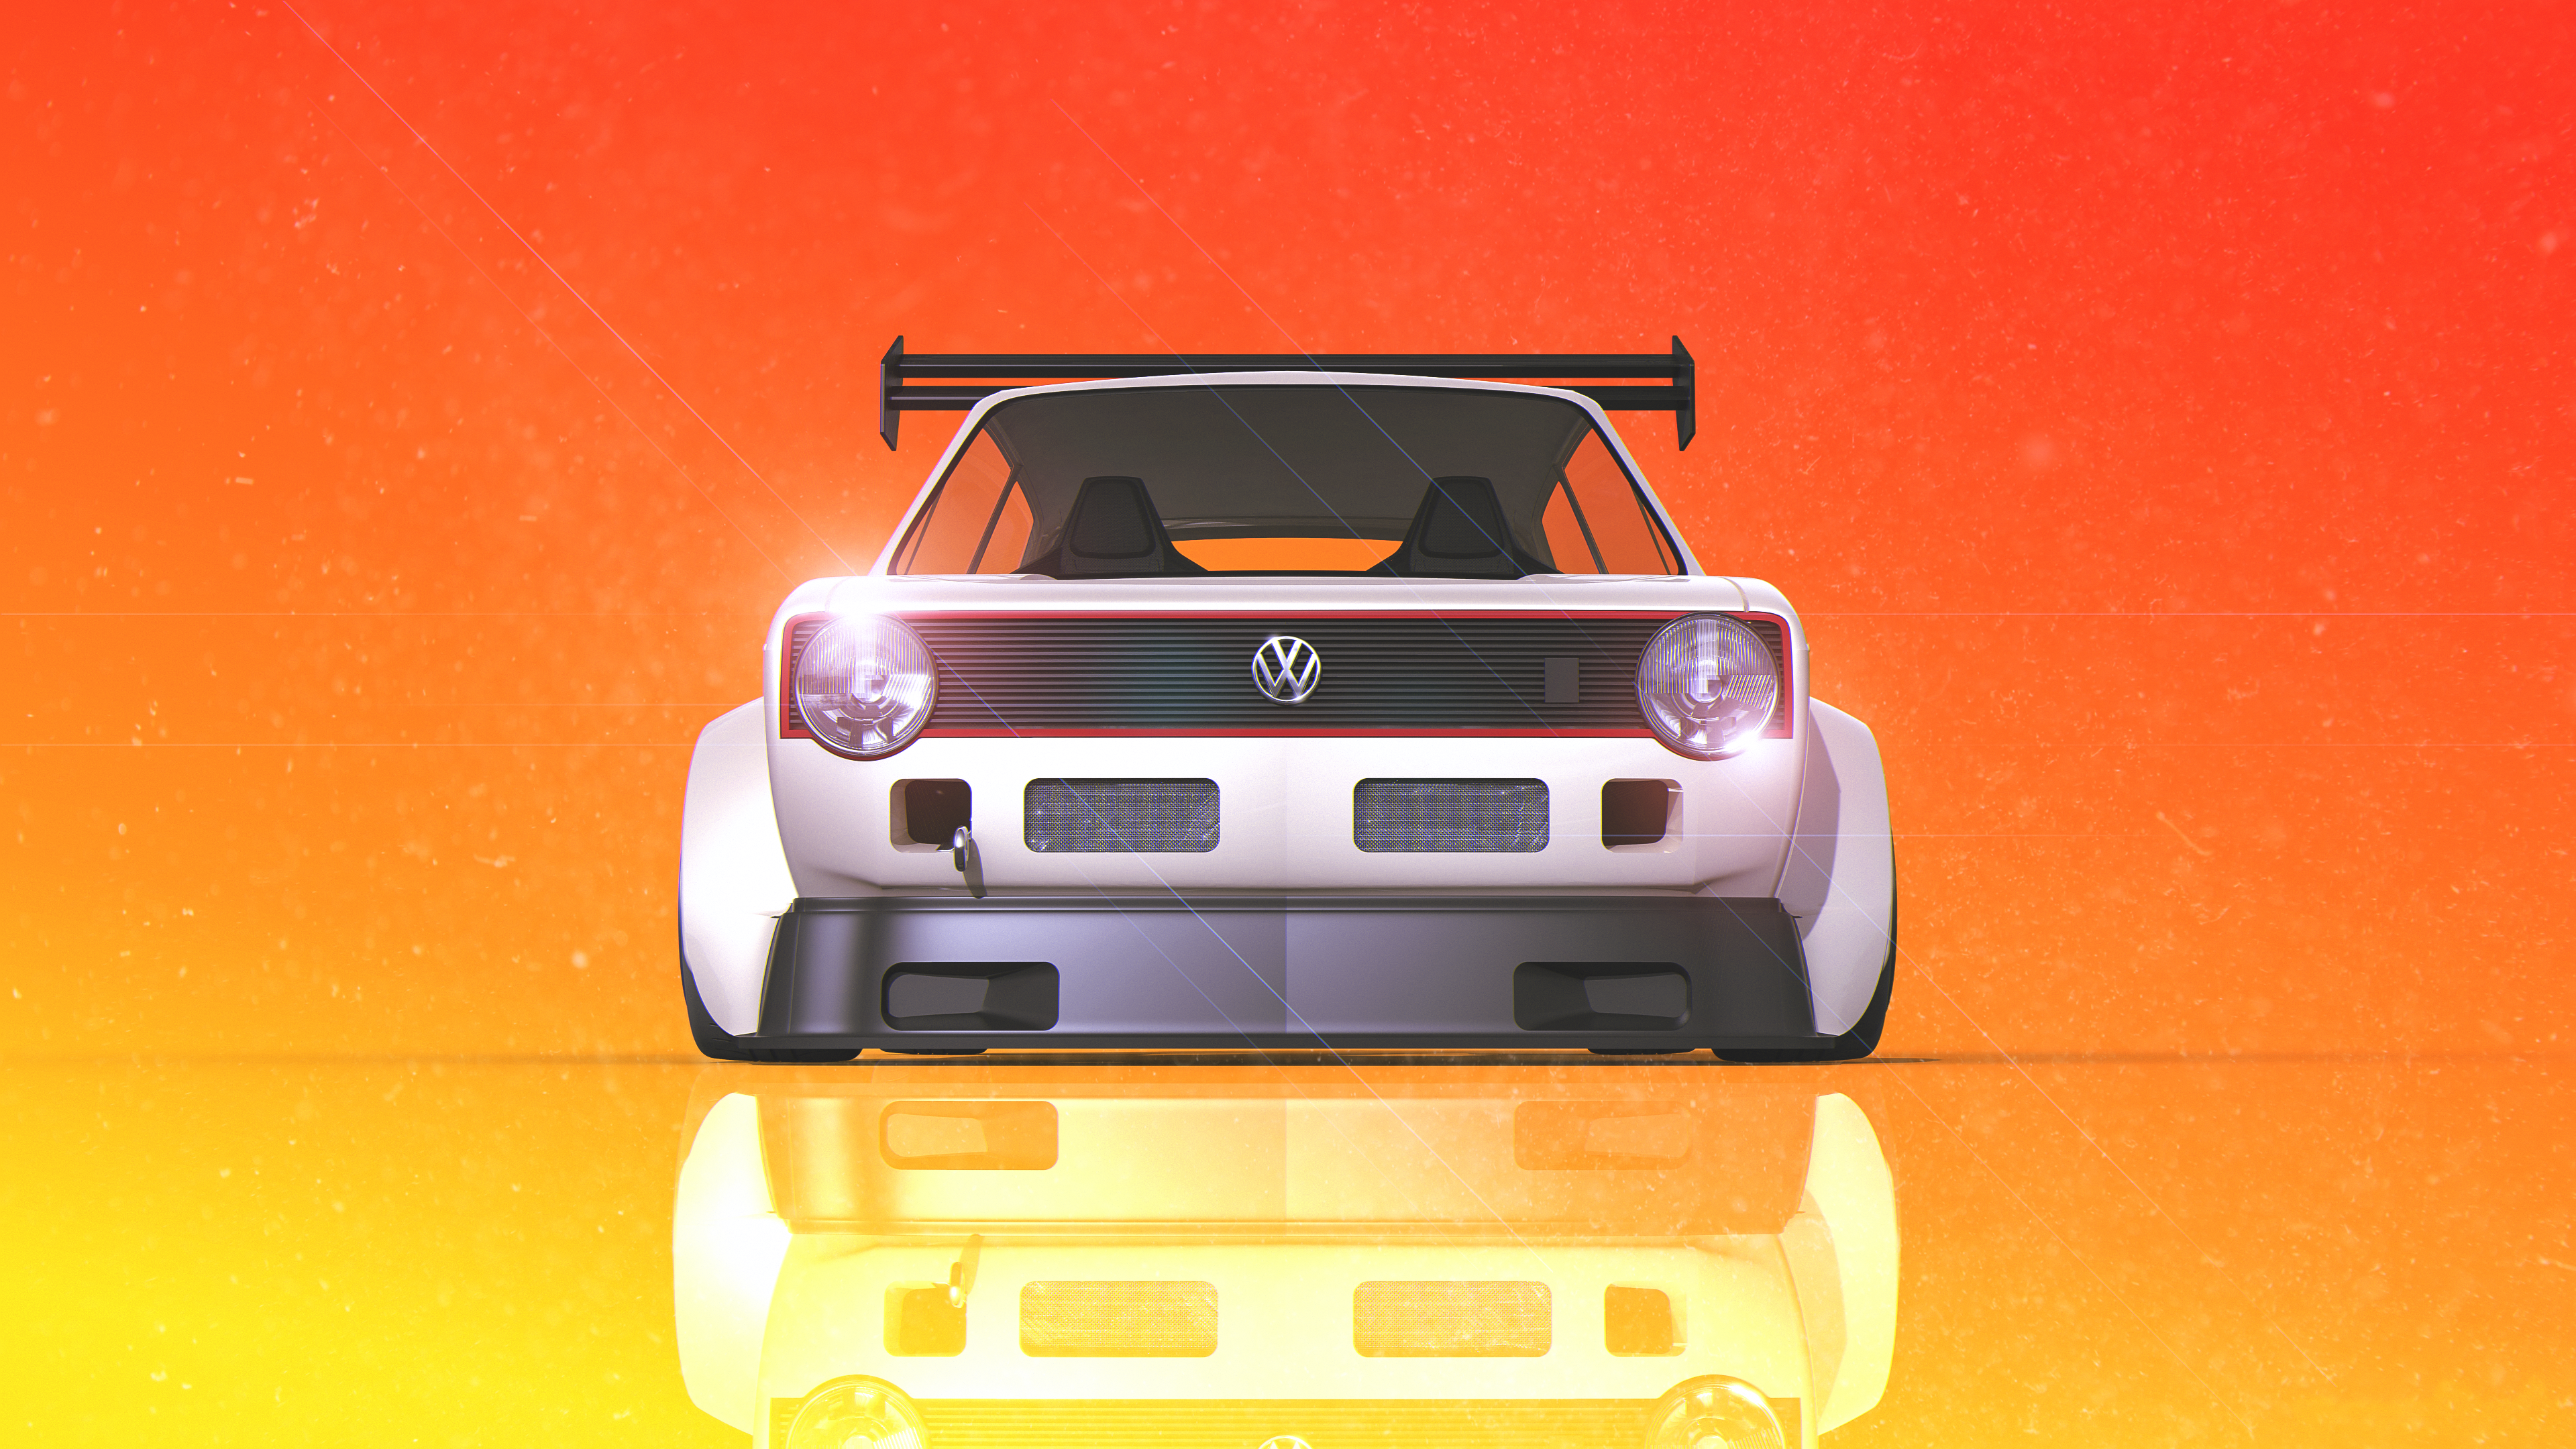 General 3840x2160 car Volkswagen Golf Golf 1 Golf GTI Volkswagen Golf GTI racing rally cars white gradient lens flare debris Volkswagen yellow orange vehicle orange background reflection frontal view low-angle